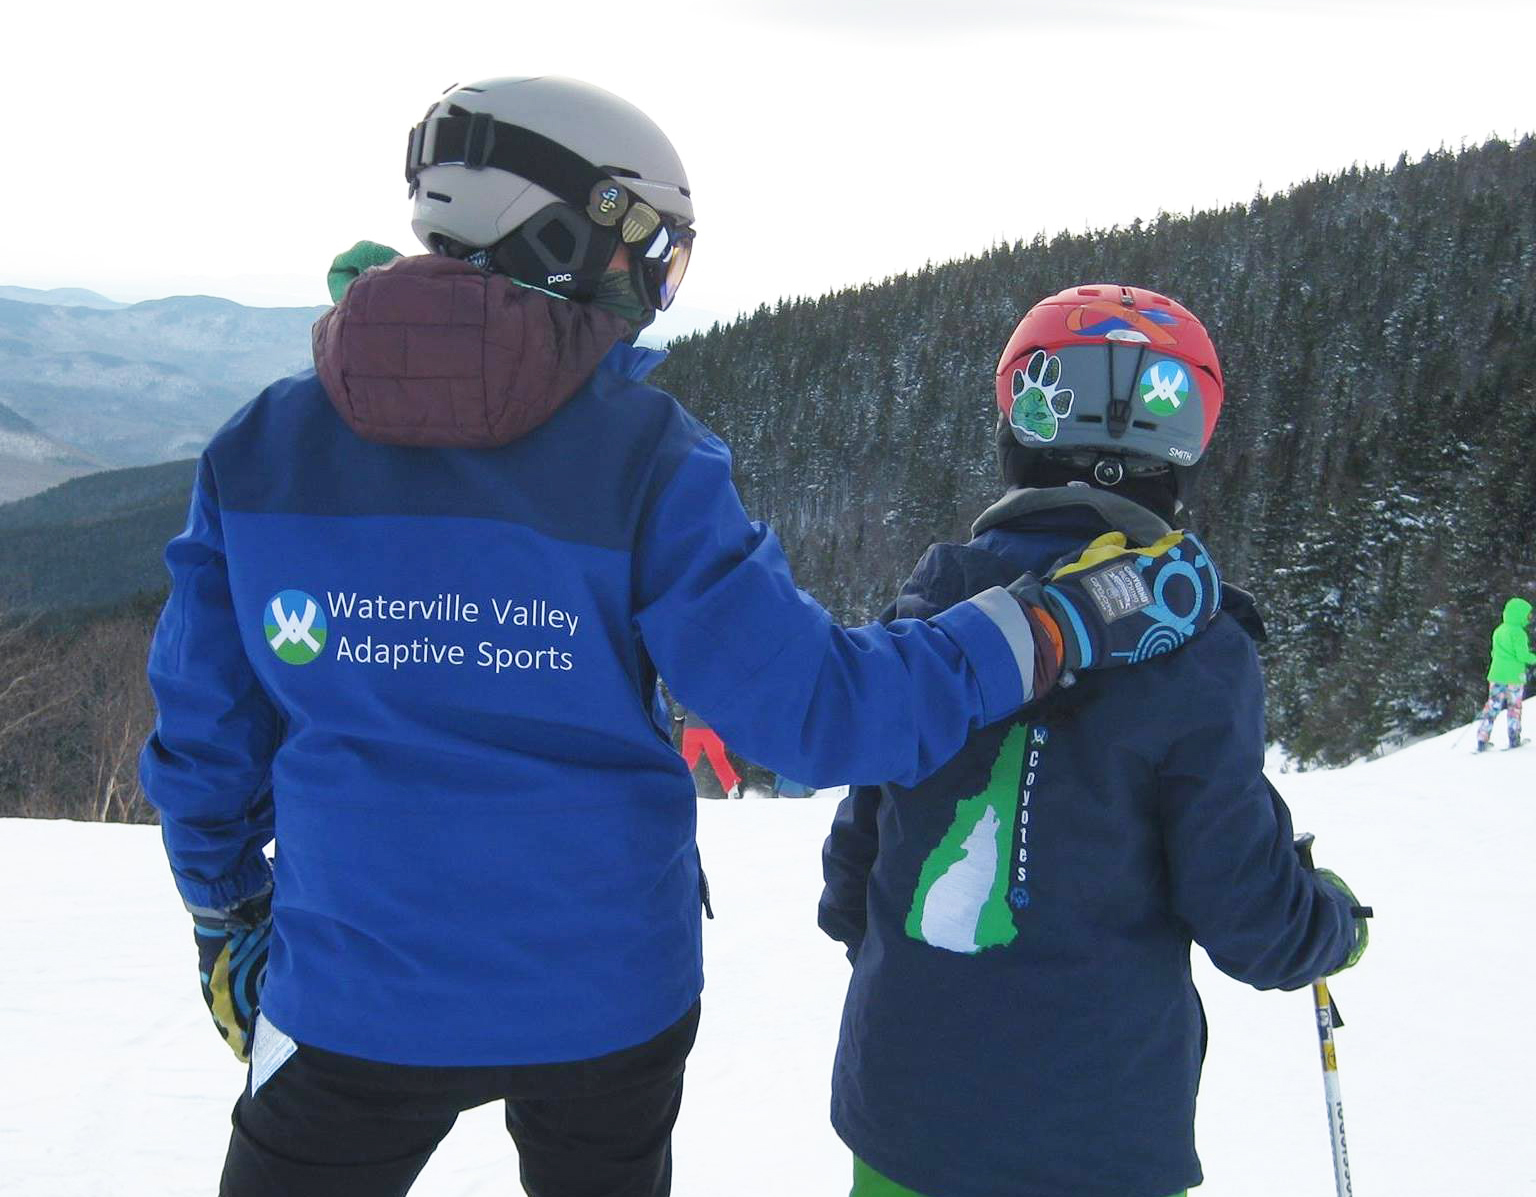 Waterville Valley Adaptive Sports